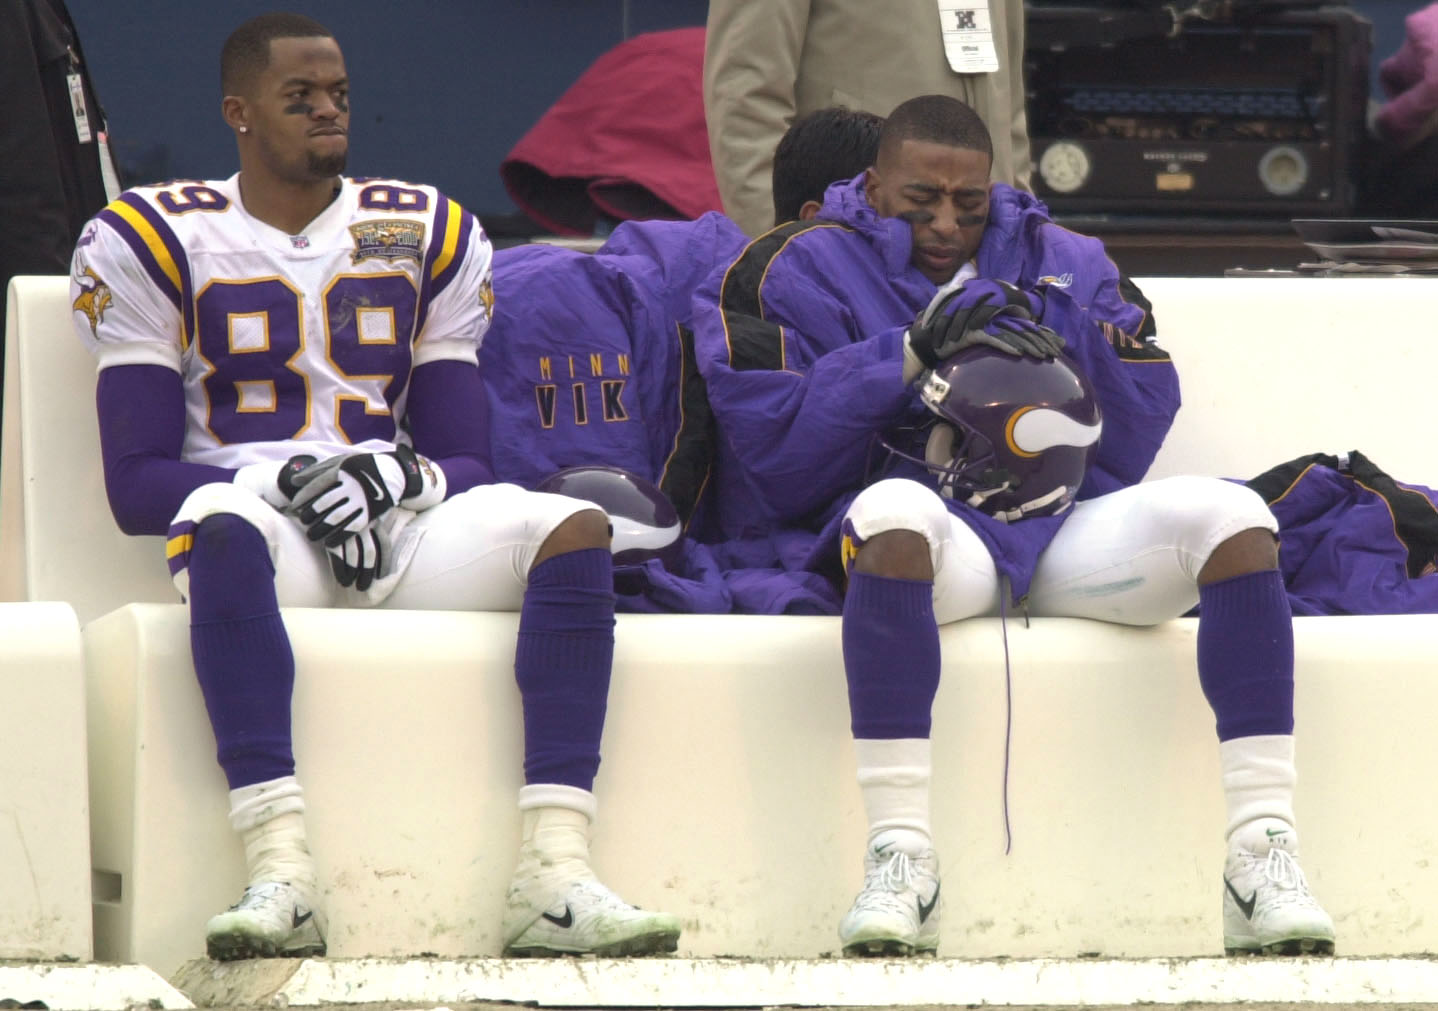 14 Jan 2001: Matthew Hatchette #89 and Cris Carter #80 of the Minnesota Vikings look dejected during the closing moments of the NFC Championship Game against the New York Giants at Giant Stadium in East Rutherford, New Jersey. New York Giants won 41-0. <D